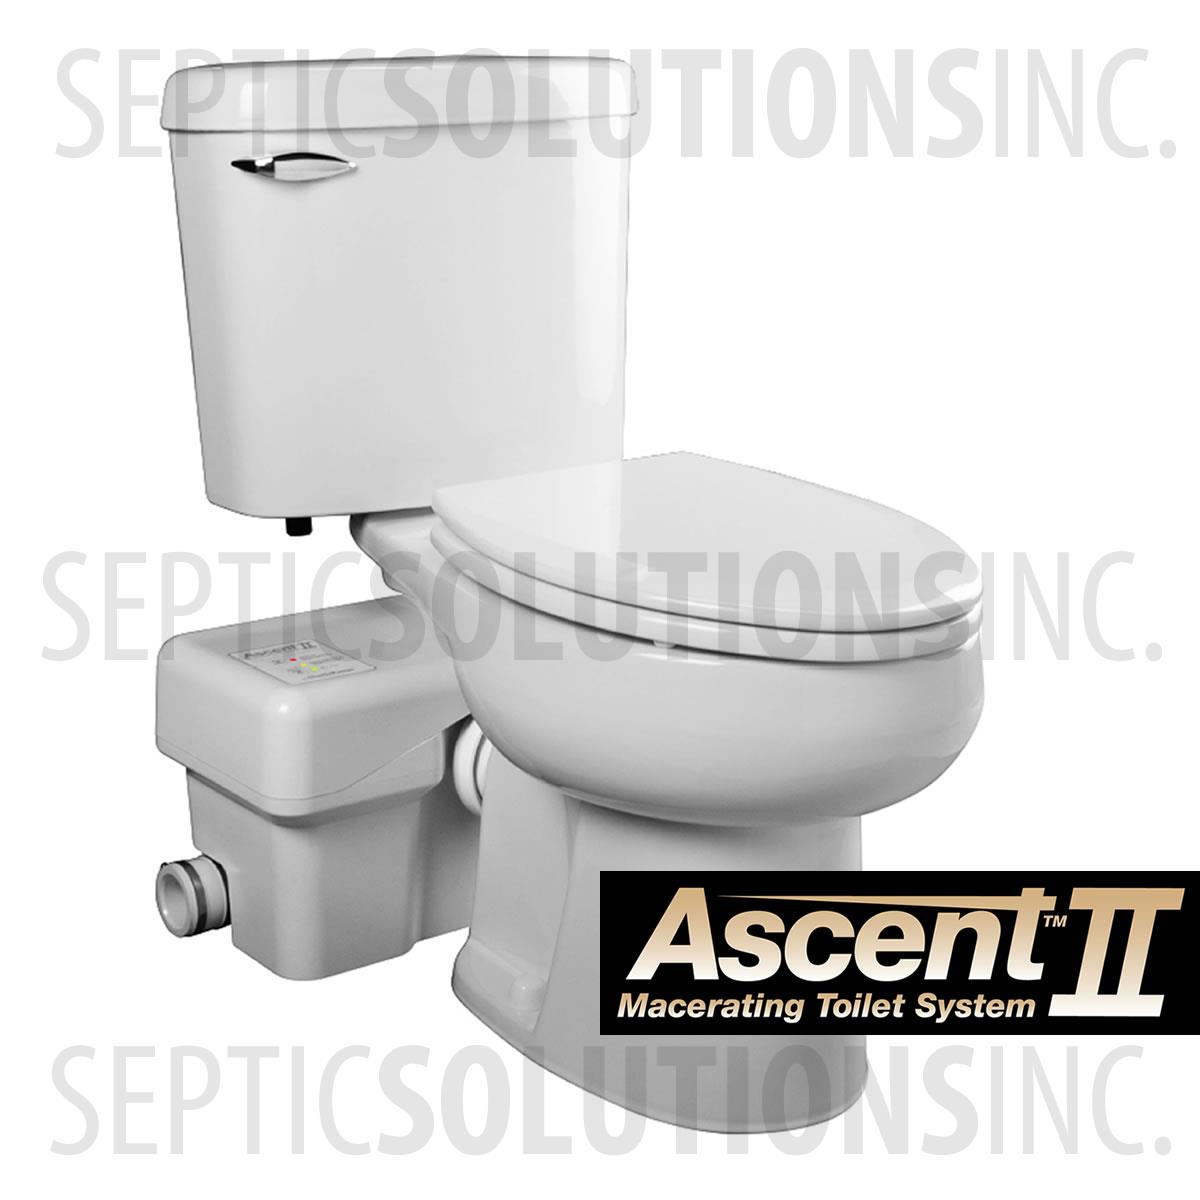 Liberty Ascent Ii Mascerating Toilet Ascentii Esw Free